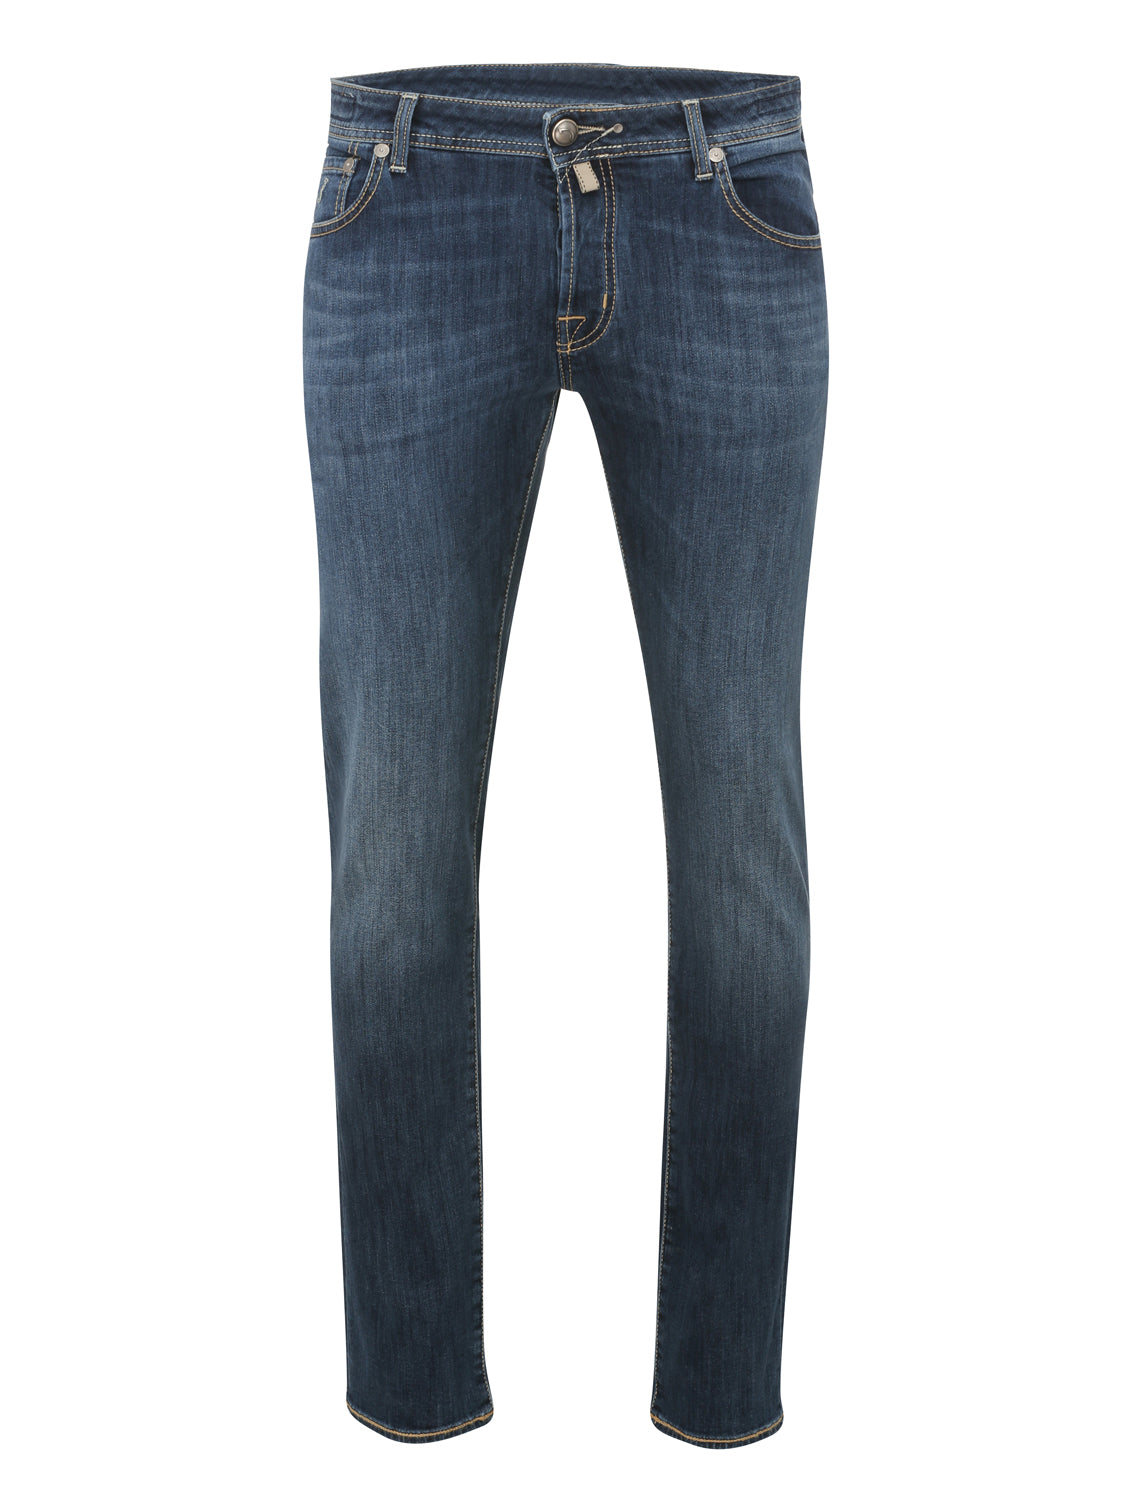 Jacob Cohen Slim Fit J622 Comfort Denim (Mid Wash) - Union 22